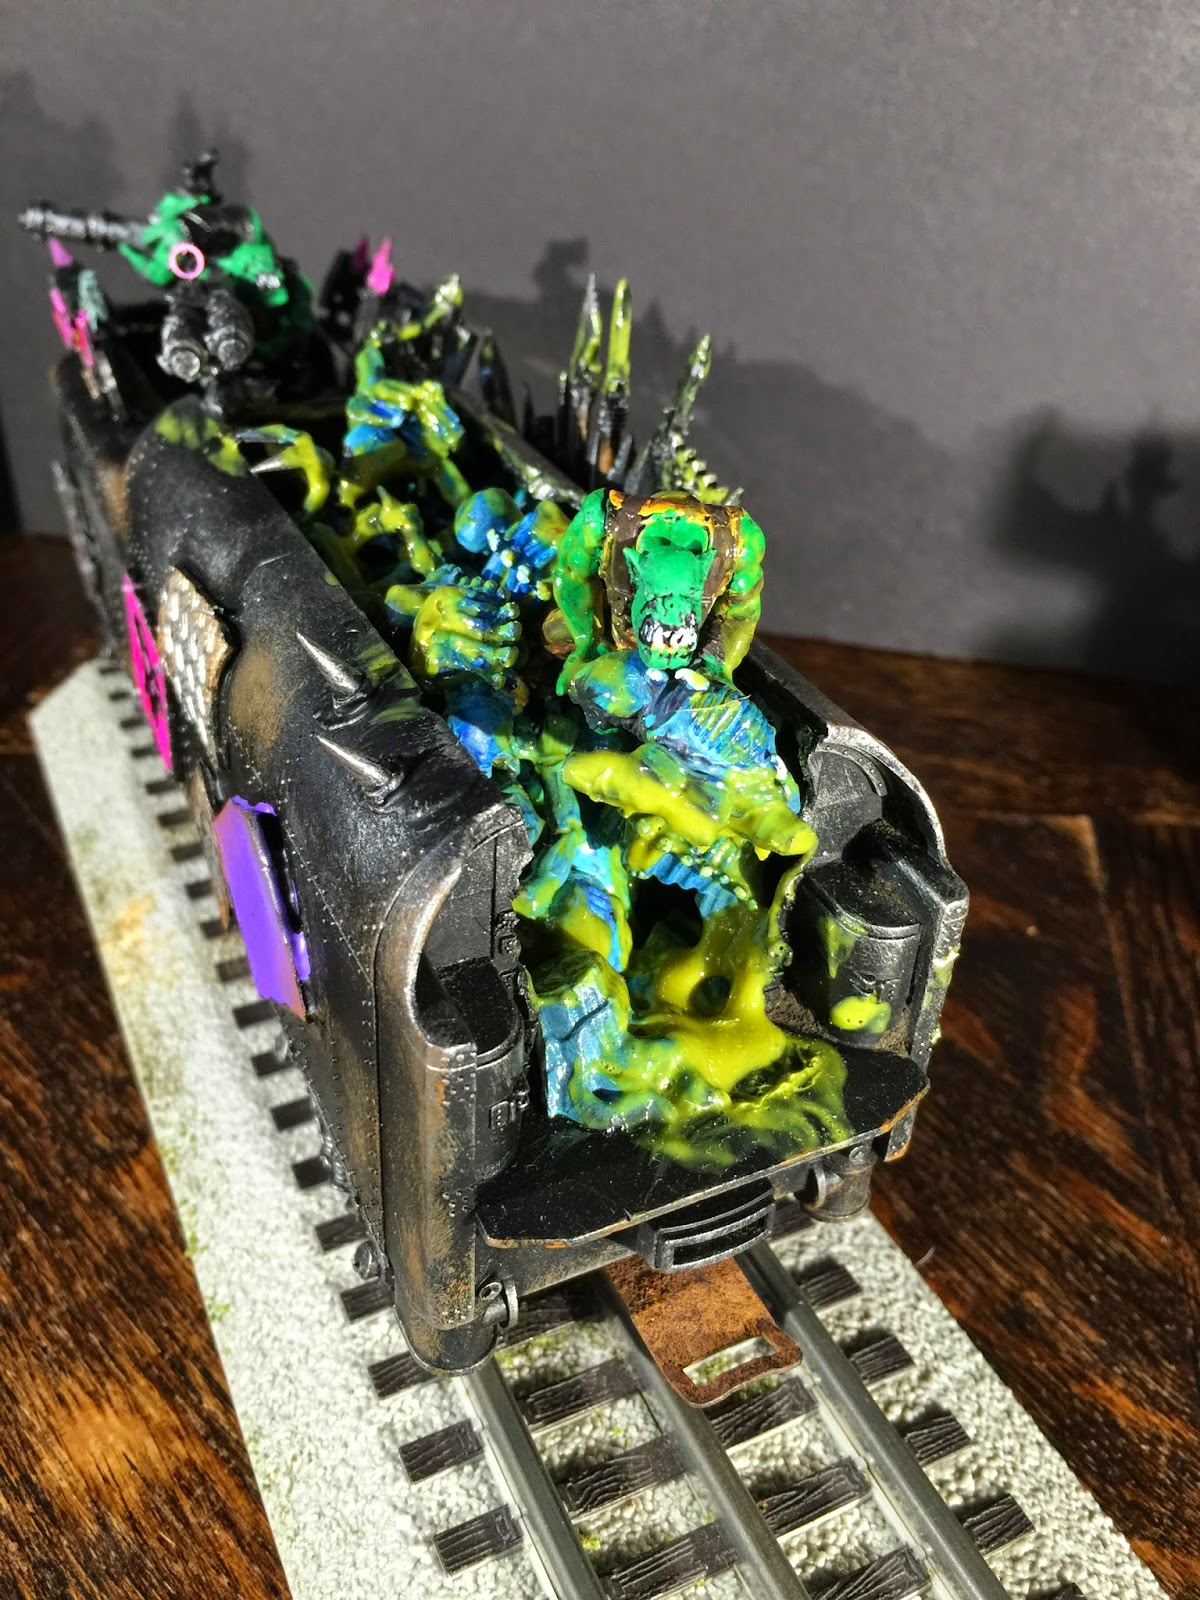 Tyranid bodies for fuel; Ork Modified Train; Battle Gaming One